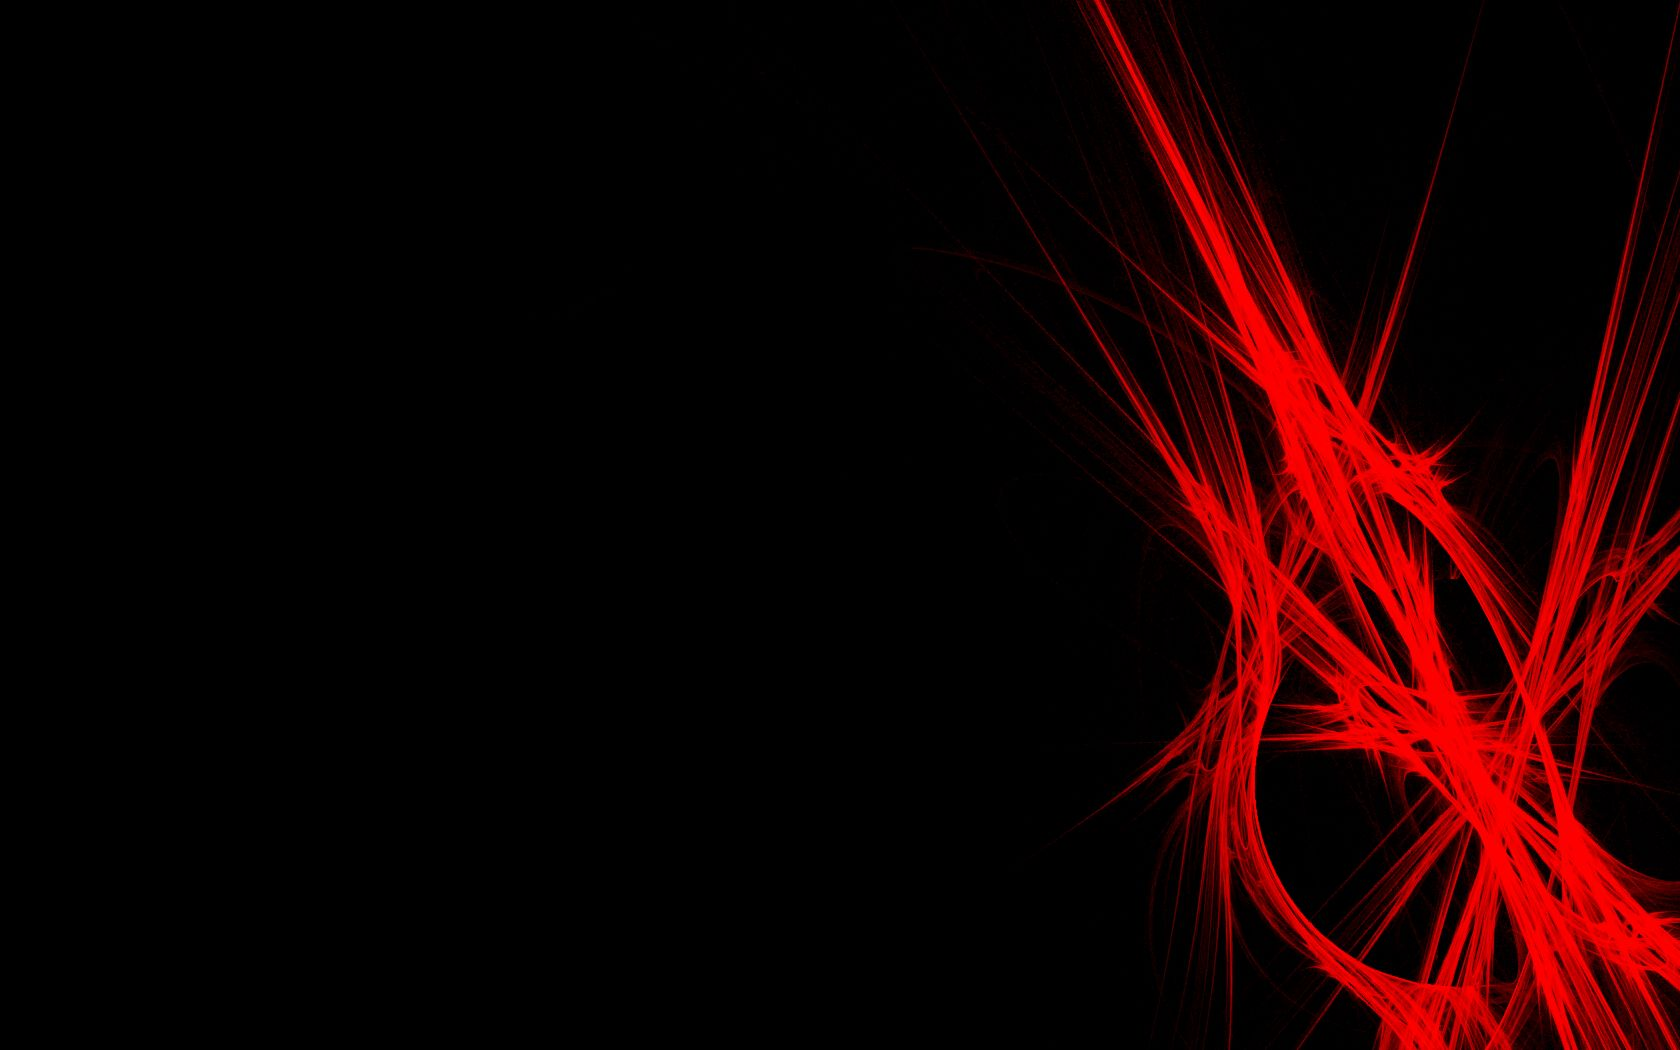 hd wallpaper black and red en yeniler en yiler cool